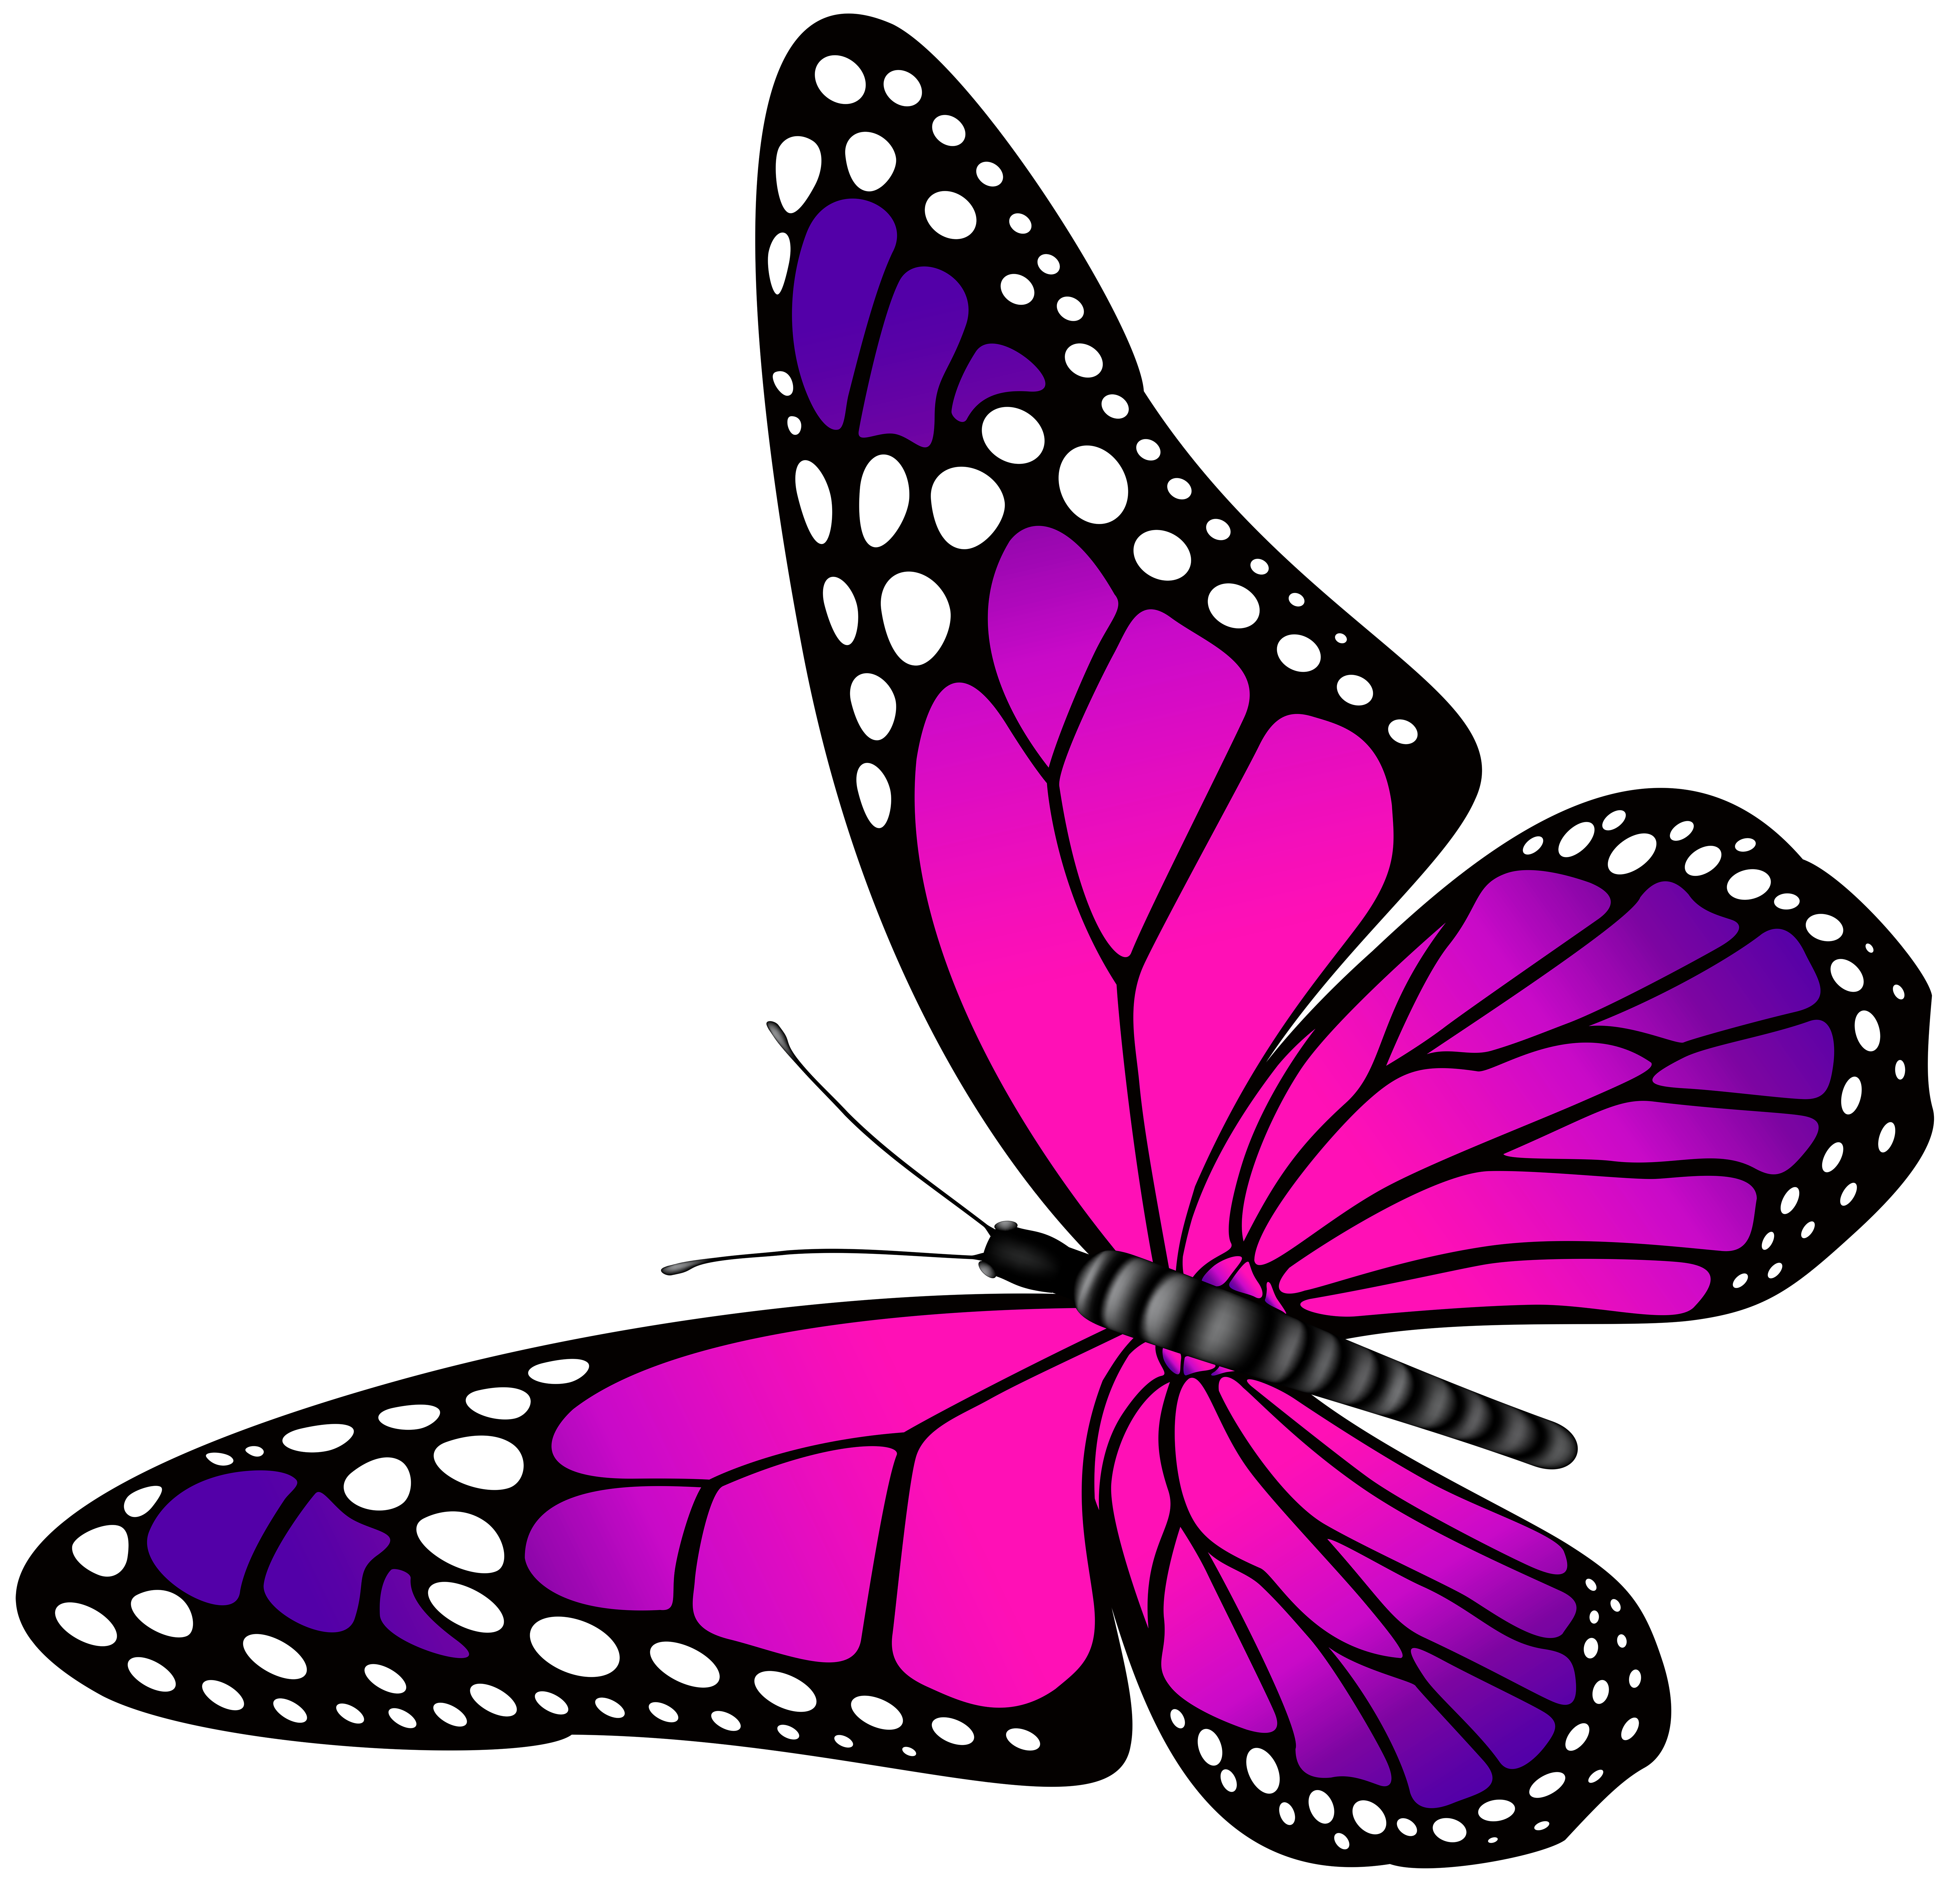 7000x6769 Butterfly Pink and Purple Transparent PNG Clip Art Image